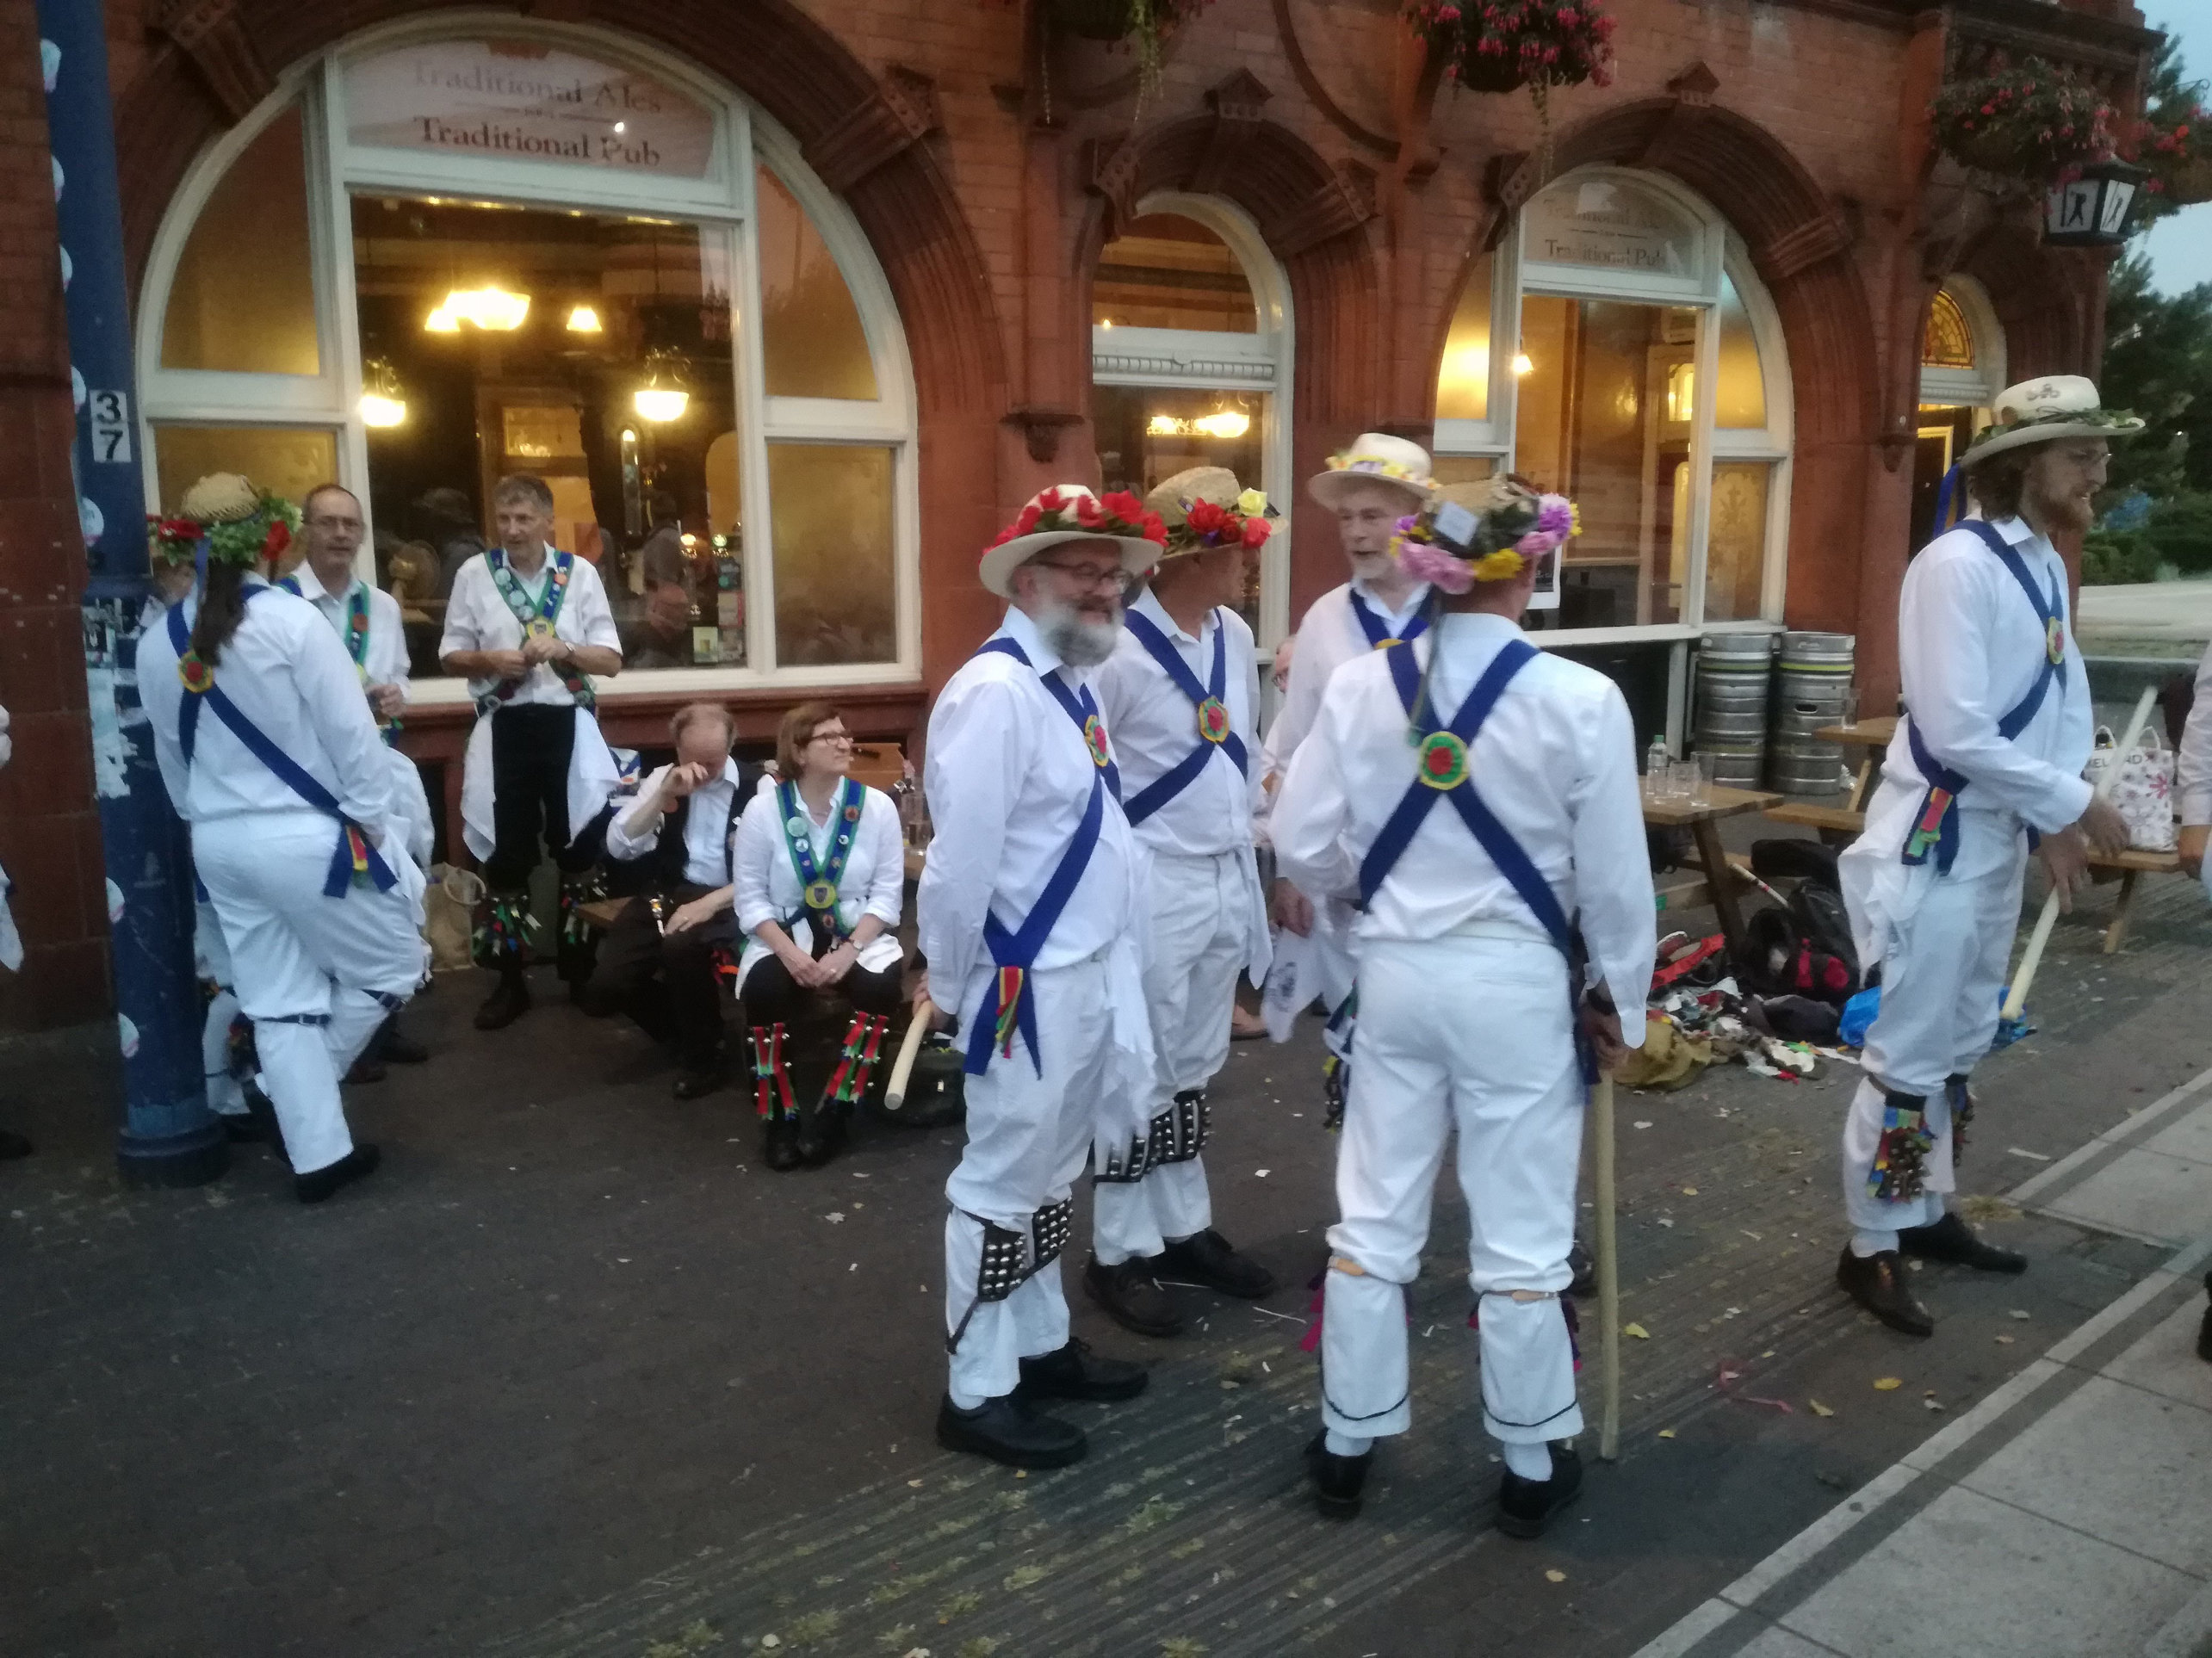 """With Guests at """"The Woodman"""" for an Evening of Dancing in June"""